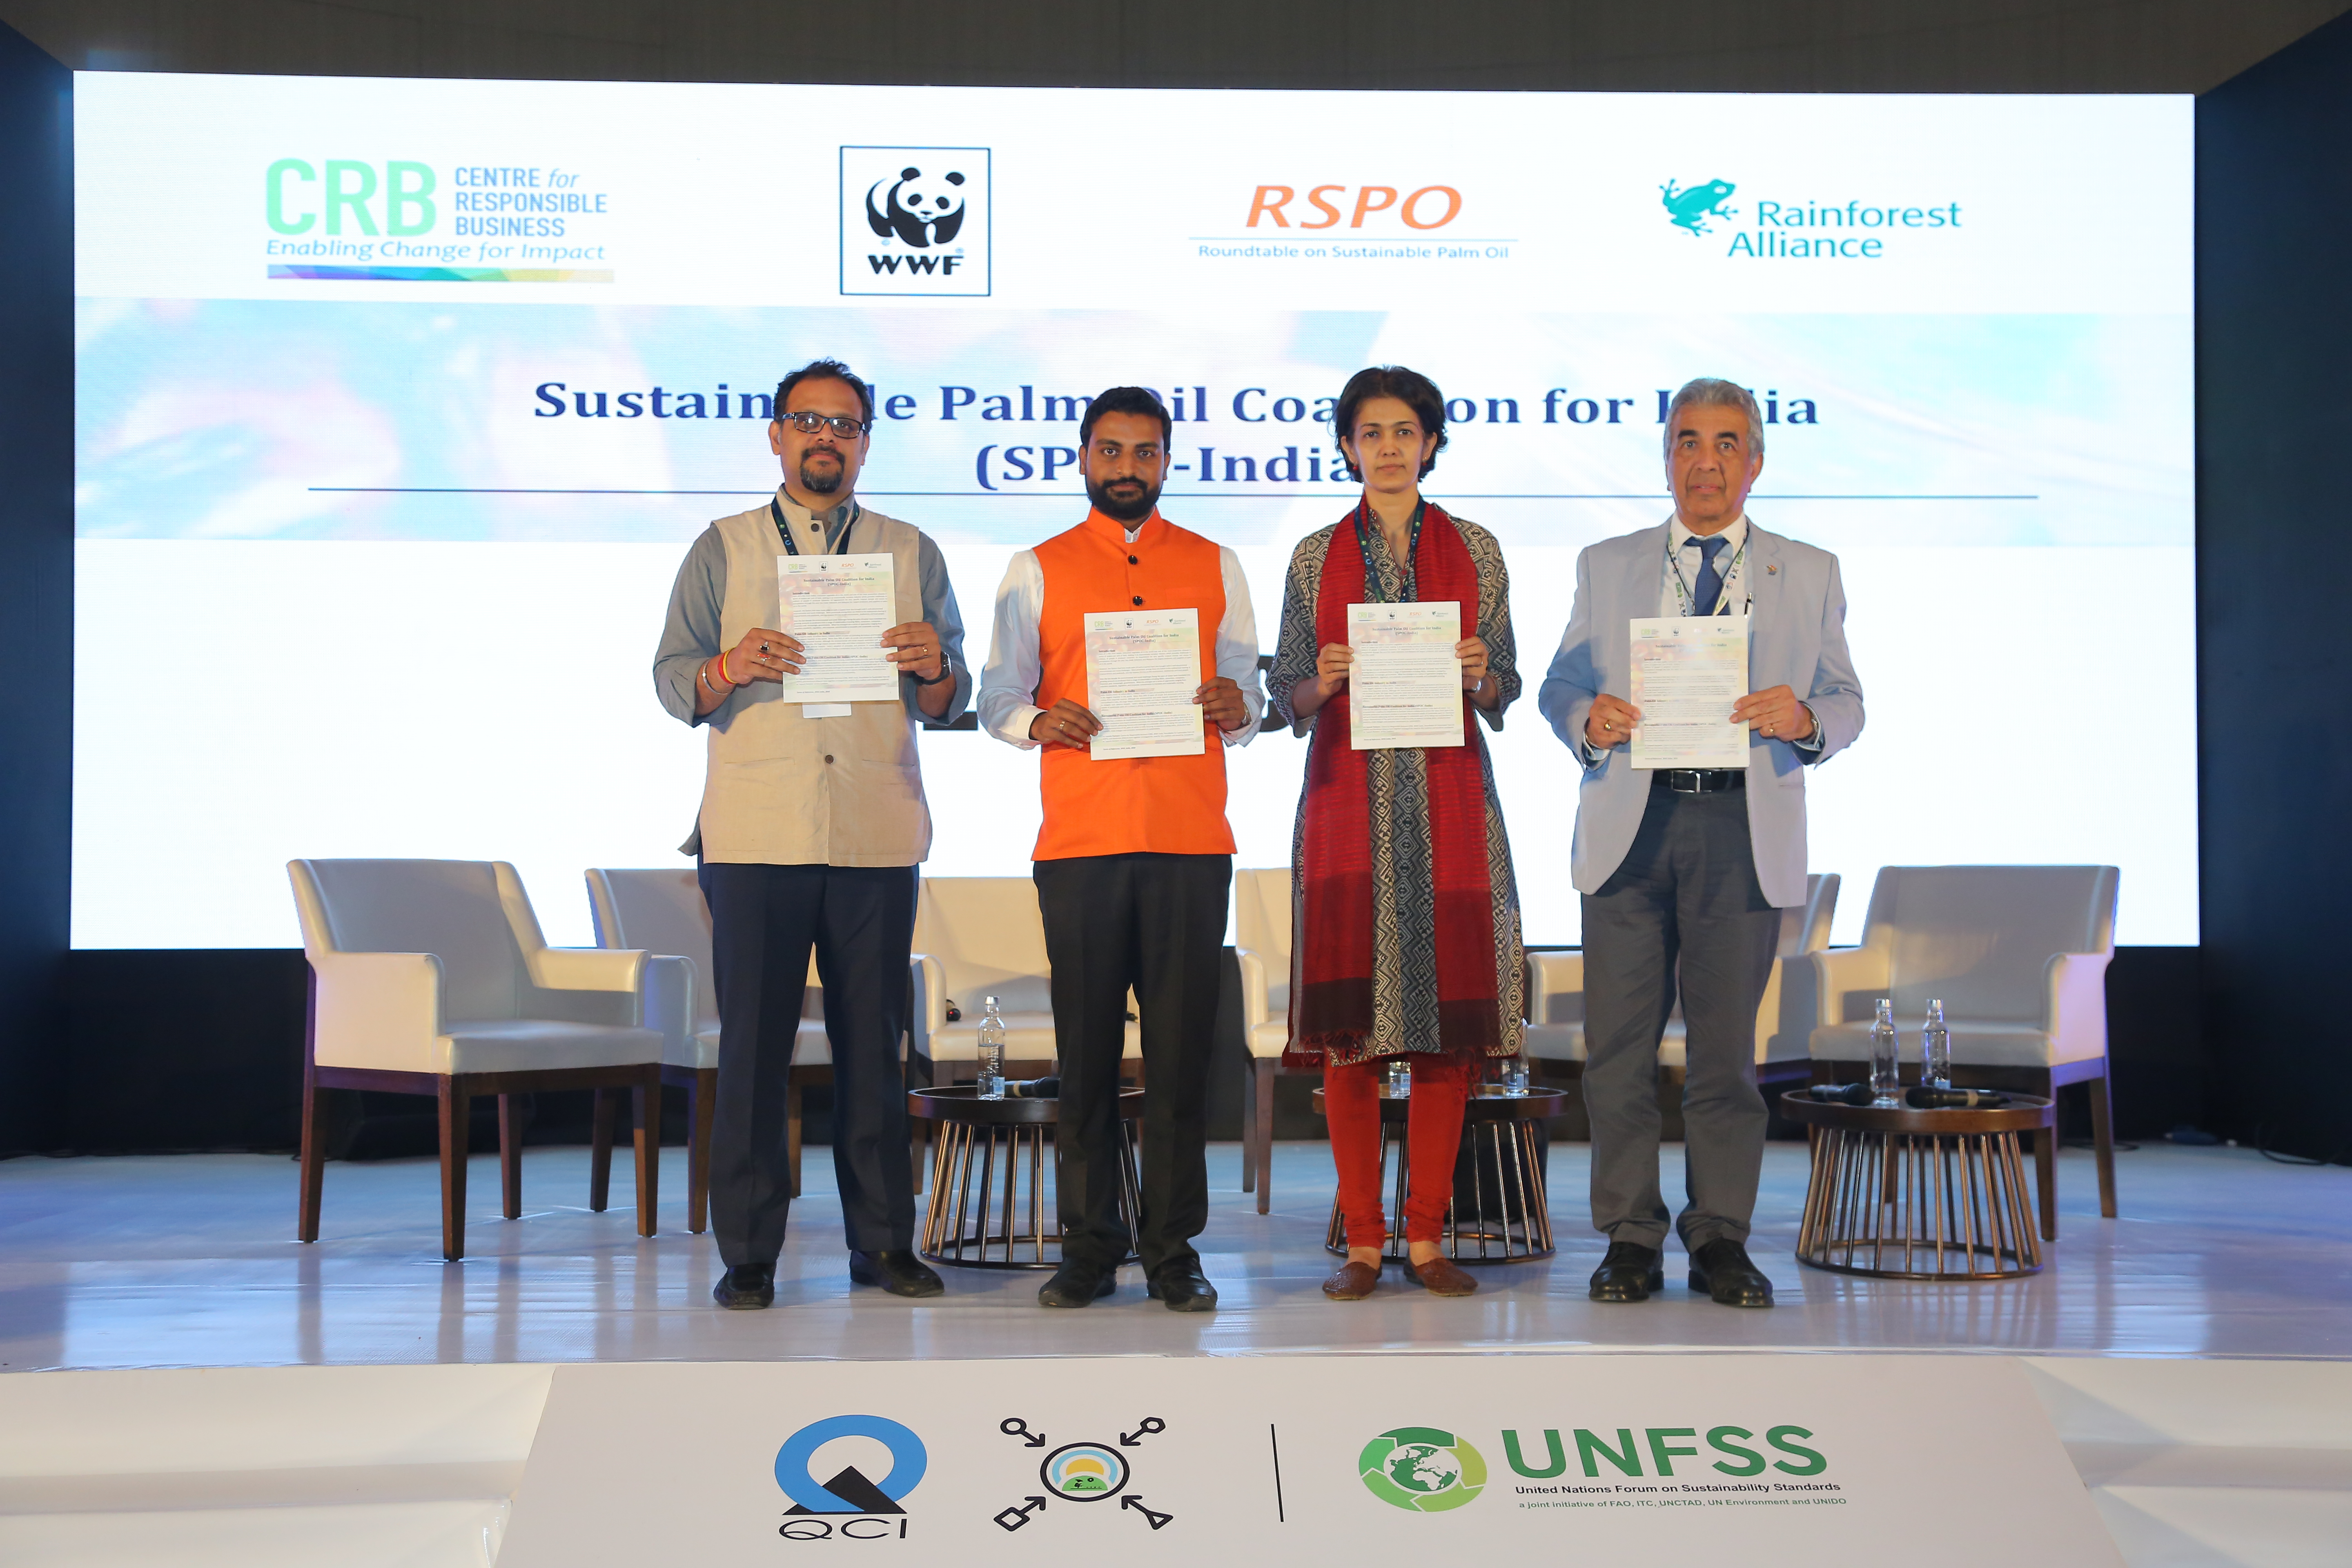 Sustainable Palm Oil Coalition for India launched to drive India's